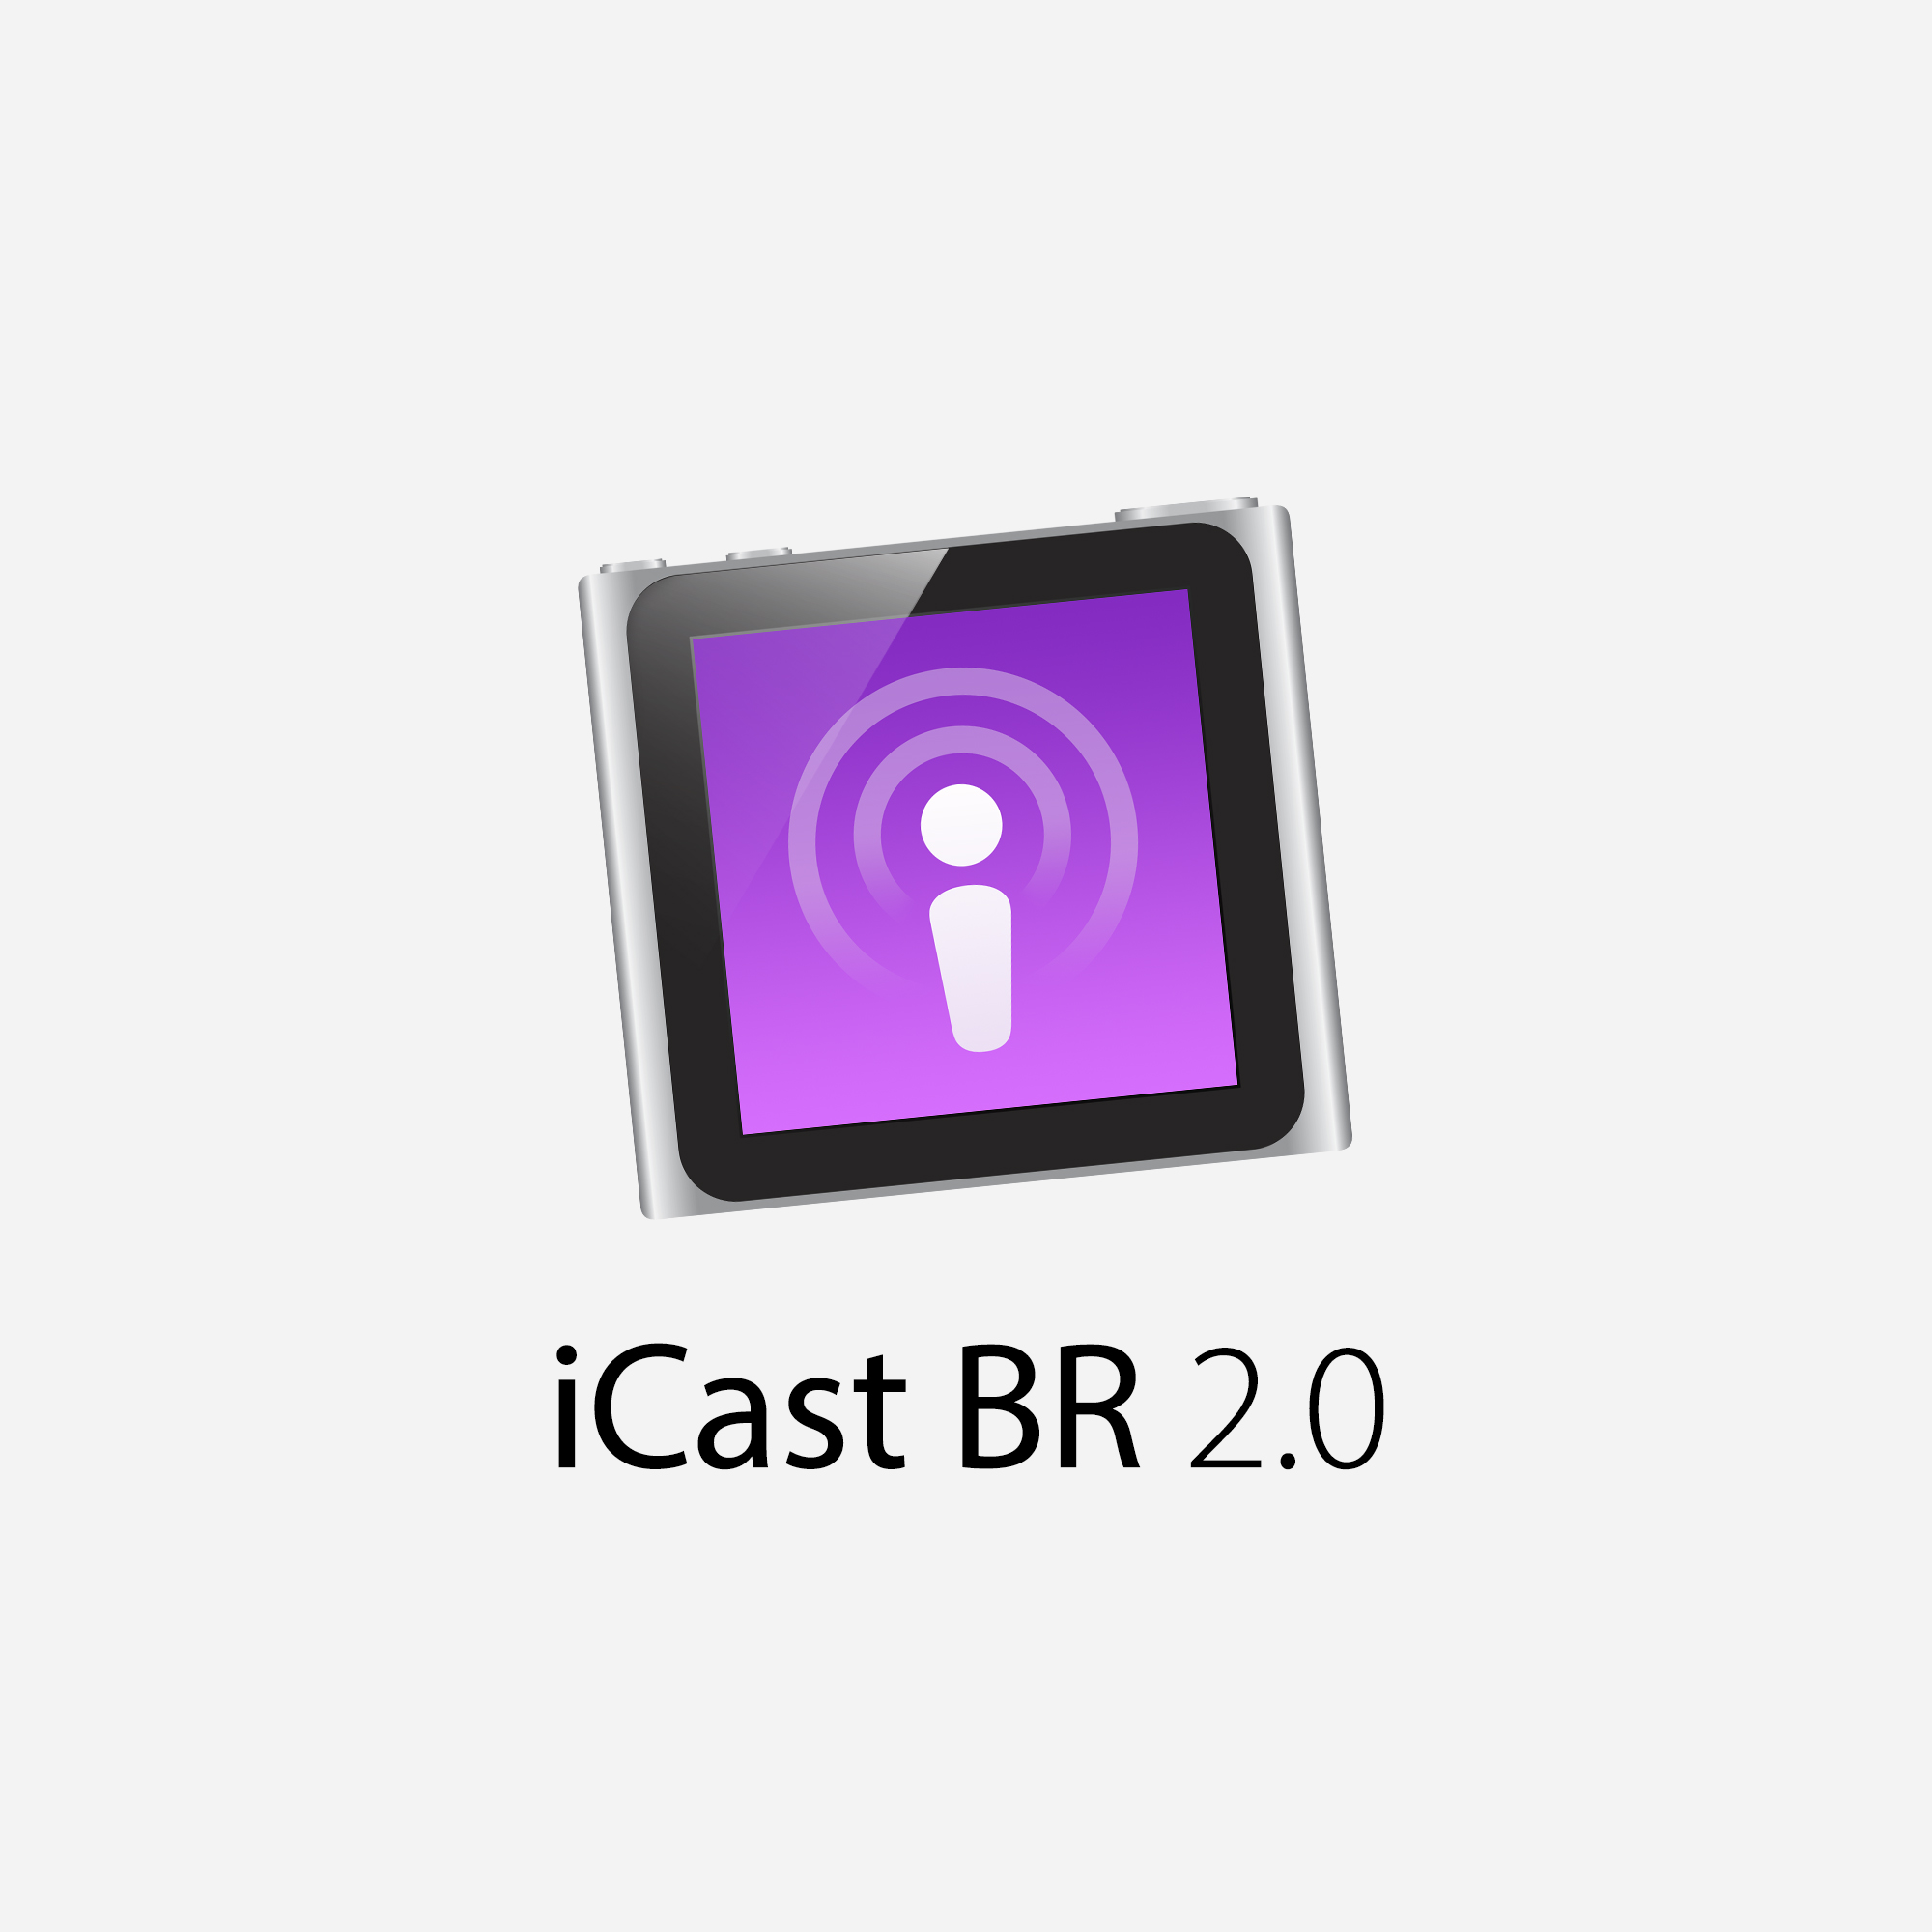 iCast BR 2.0